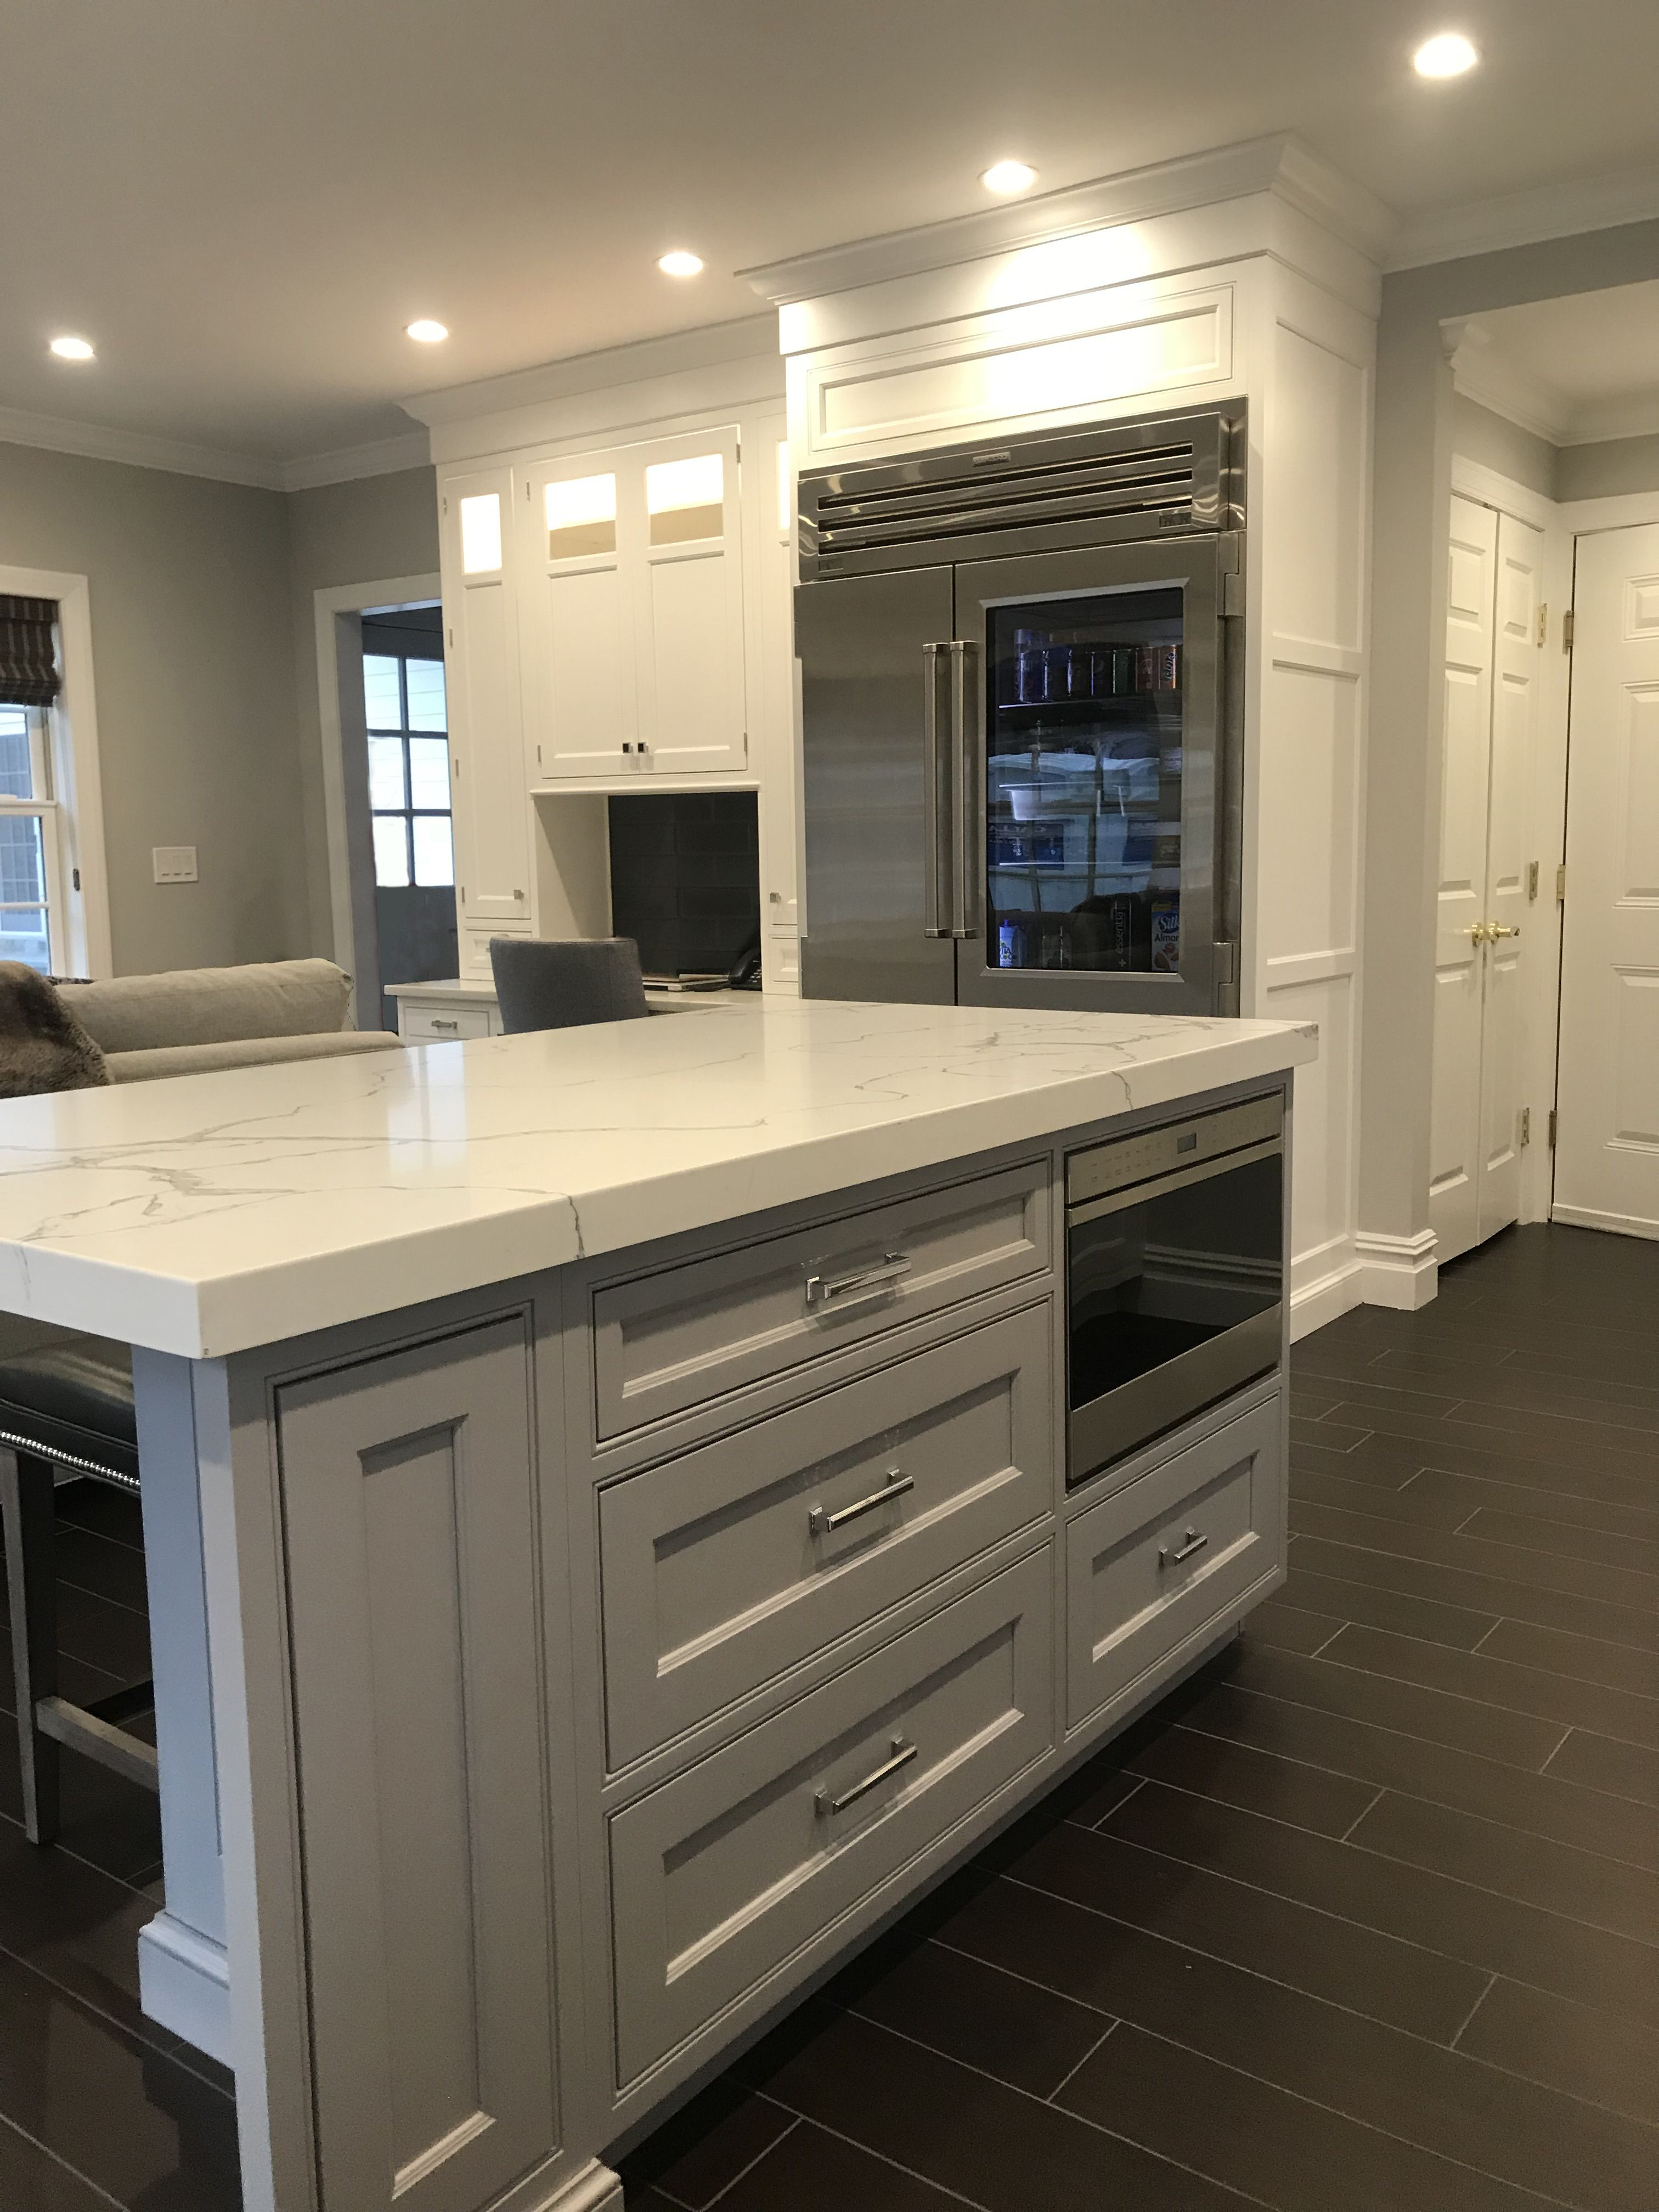 Ruttcabinetry In Warm Grey Tone Enhances White Perimeter Cabinetry Kitchen And Bath Remodeling Kitchen And Bath Design Custom Kitchens